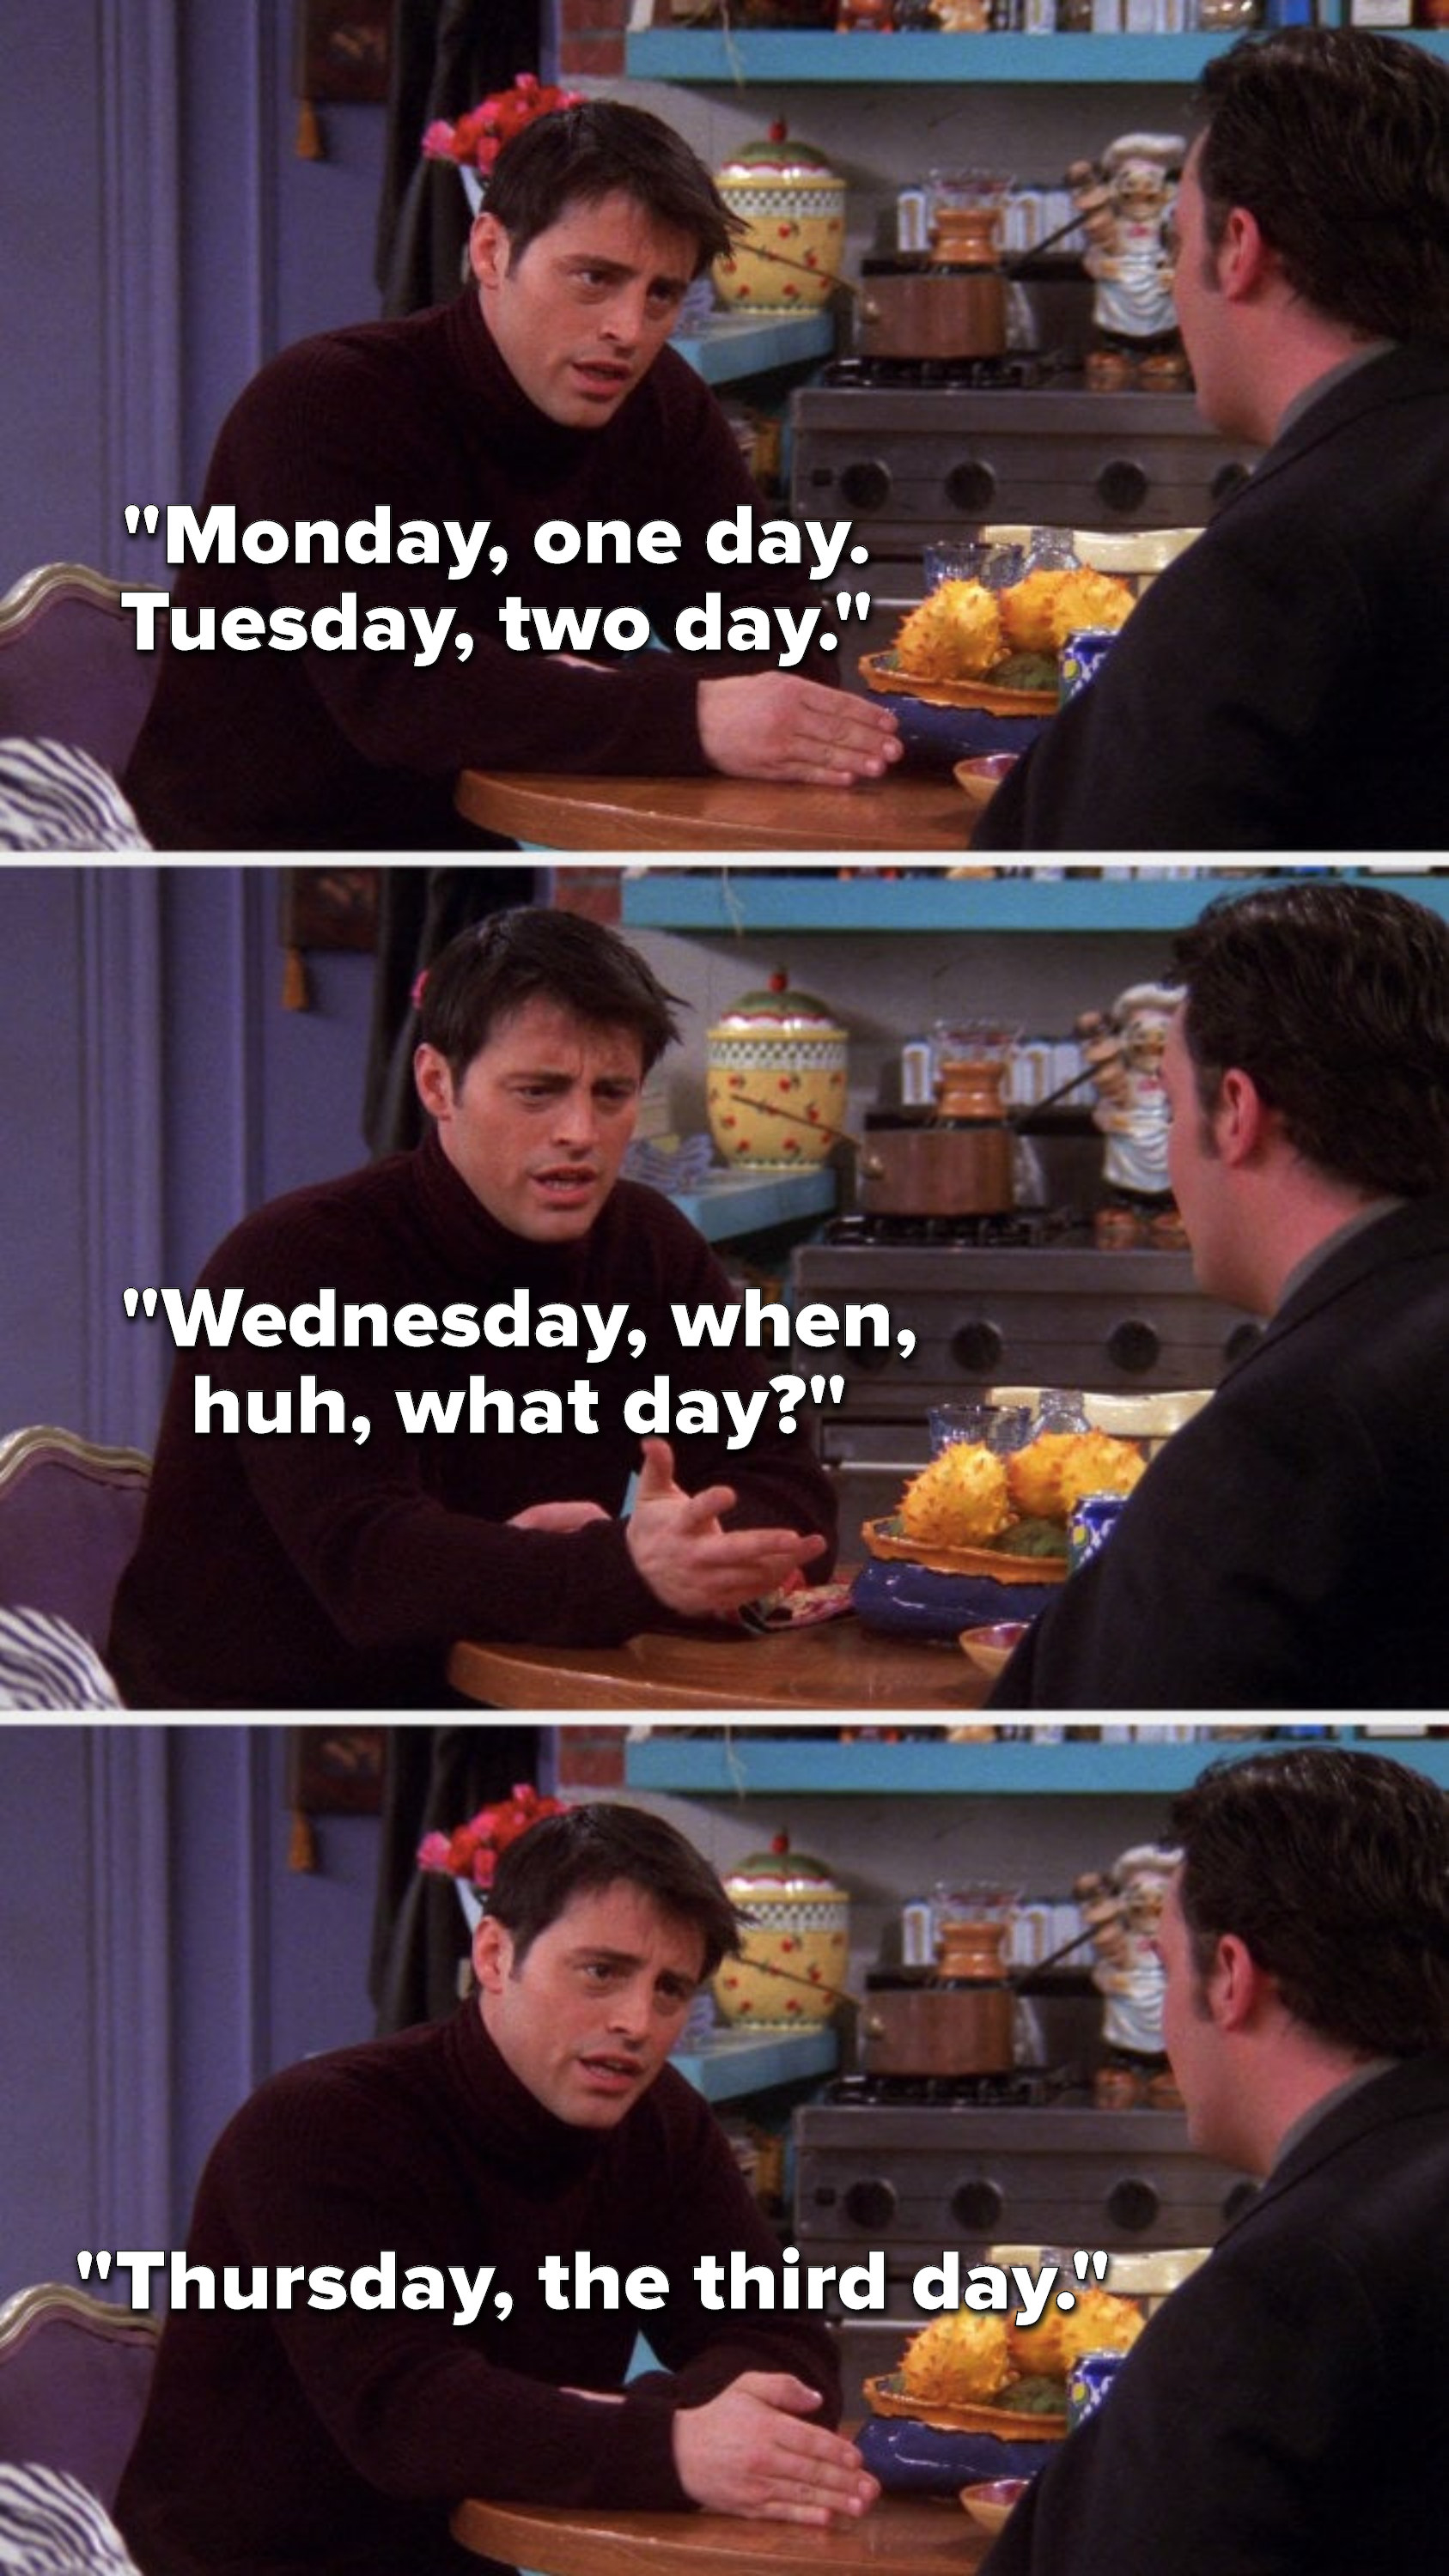 """Joey says, """"Monday, one day, Tuesday, two day, Wednesday, when, huh what day, Thursday, the third day"""""""